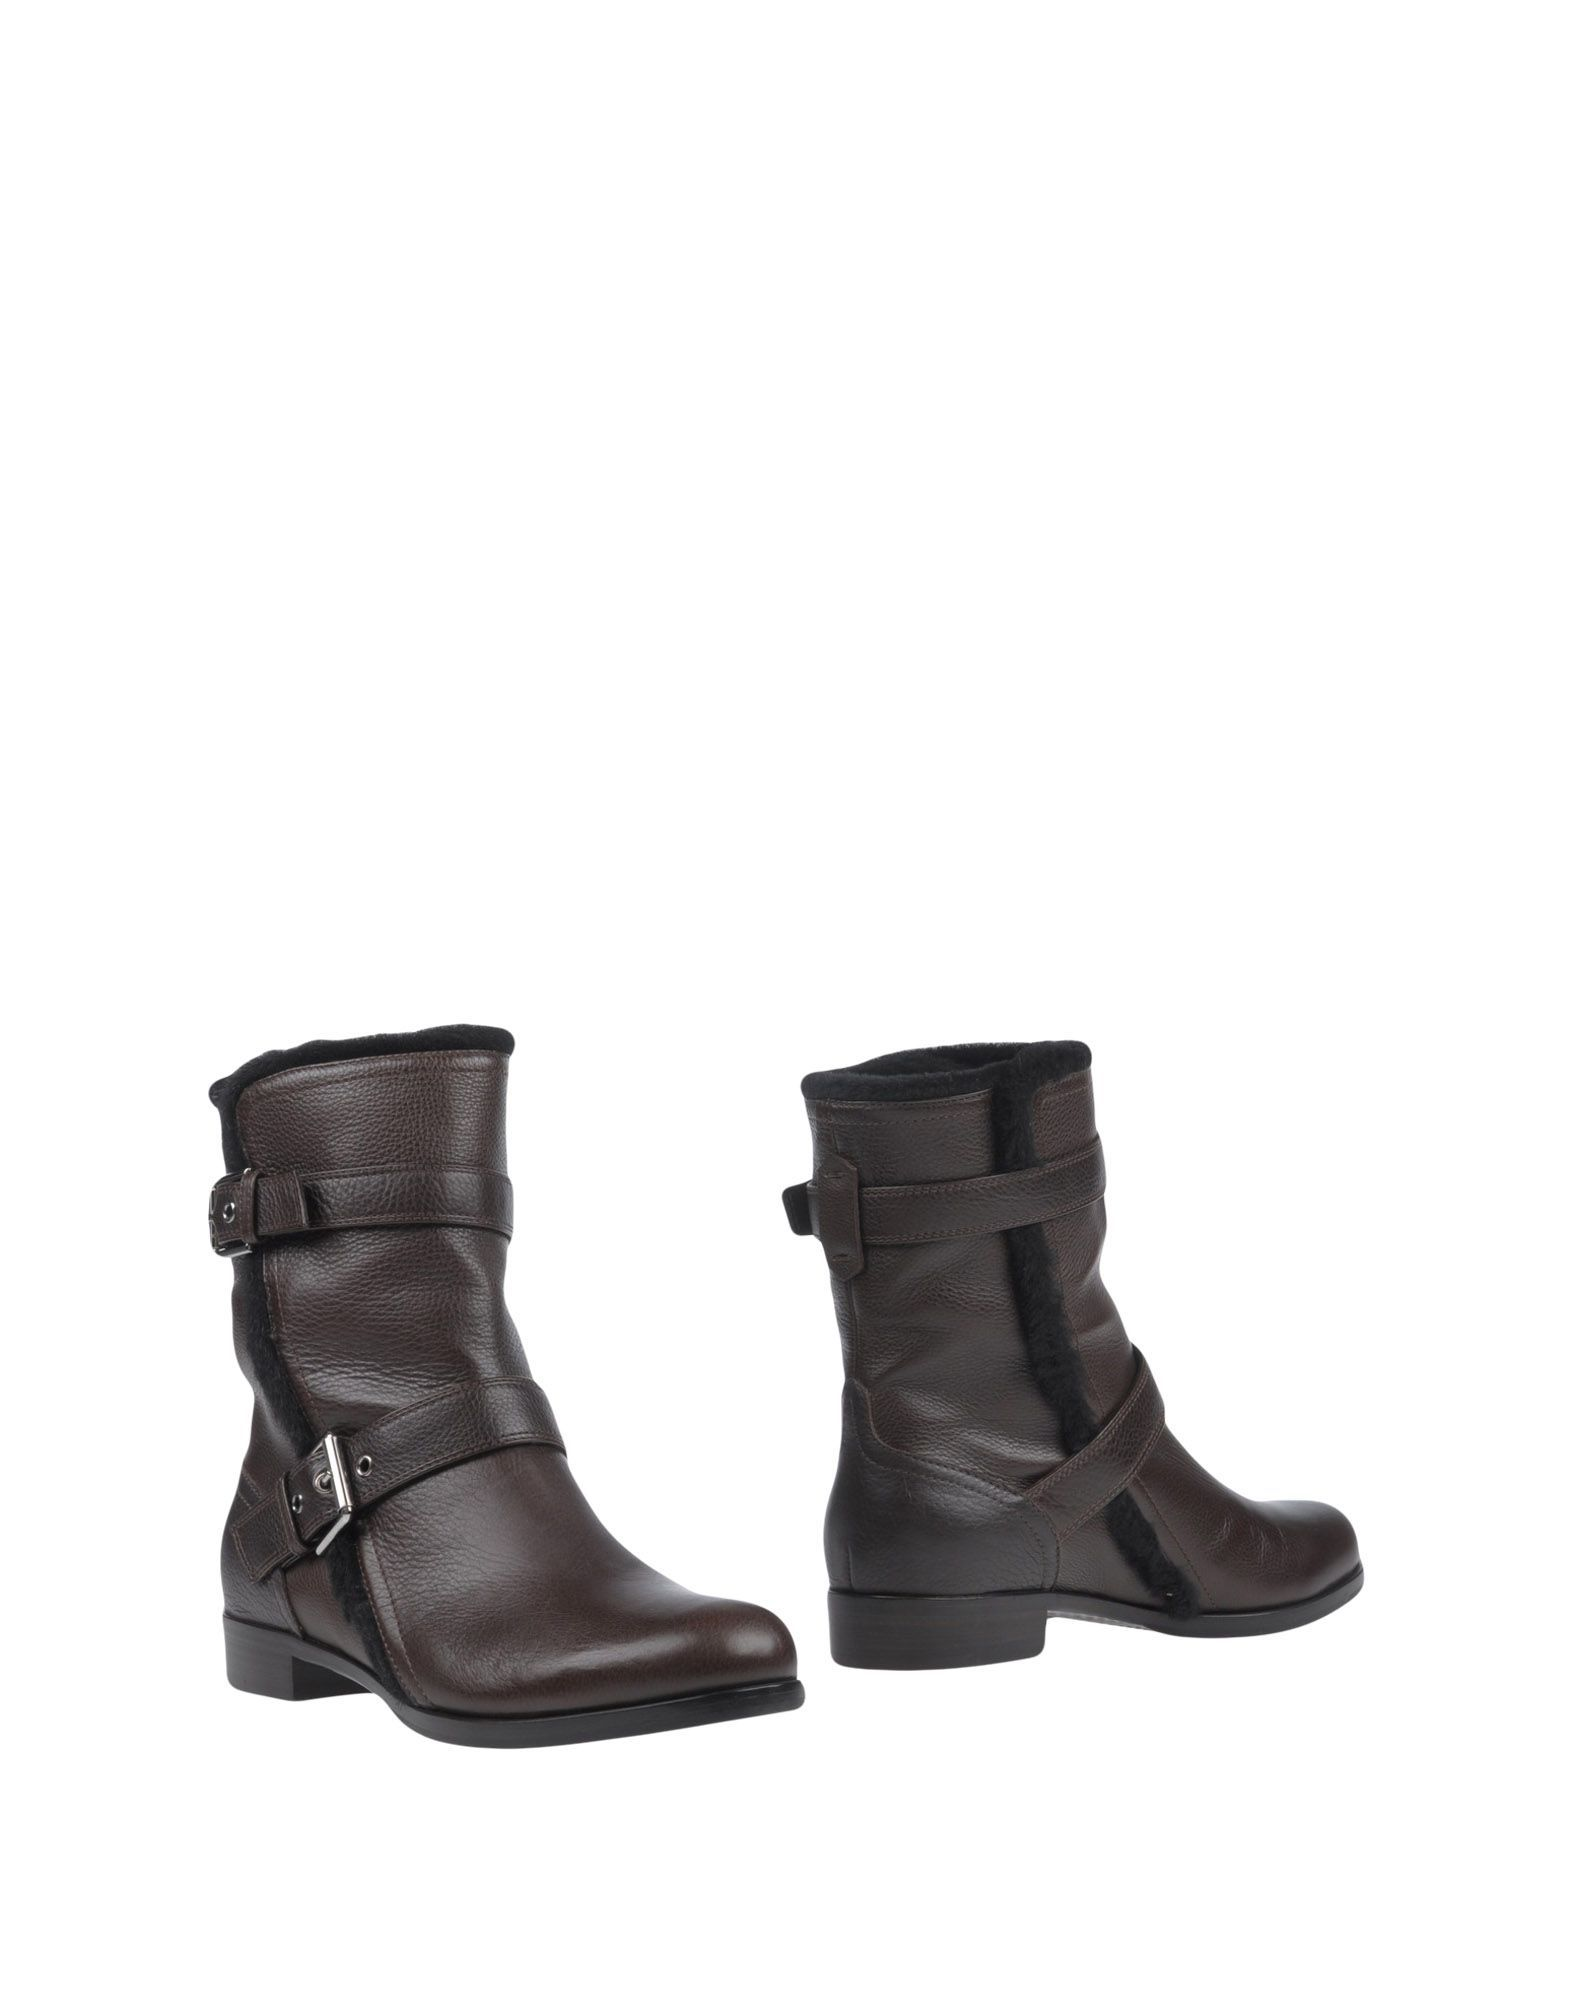 Gianvito Rossi Dark Brown Shearling Ankle Boots